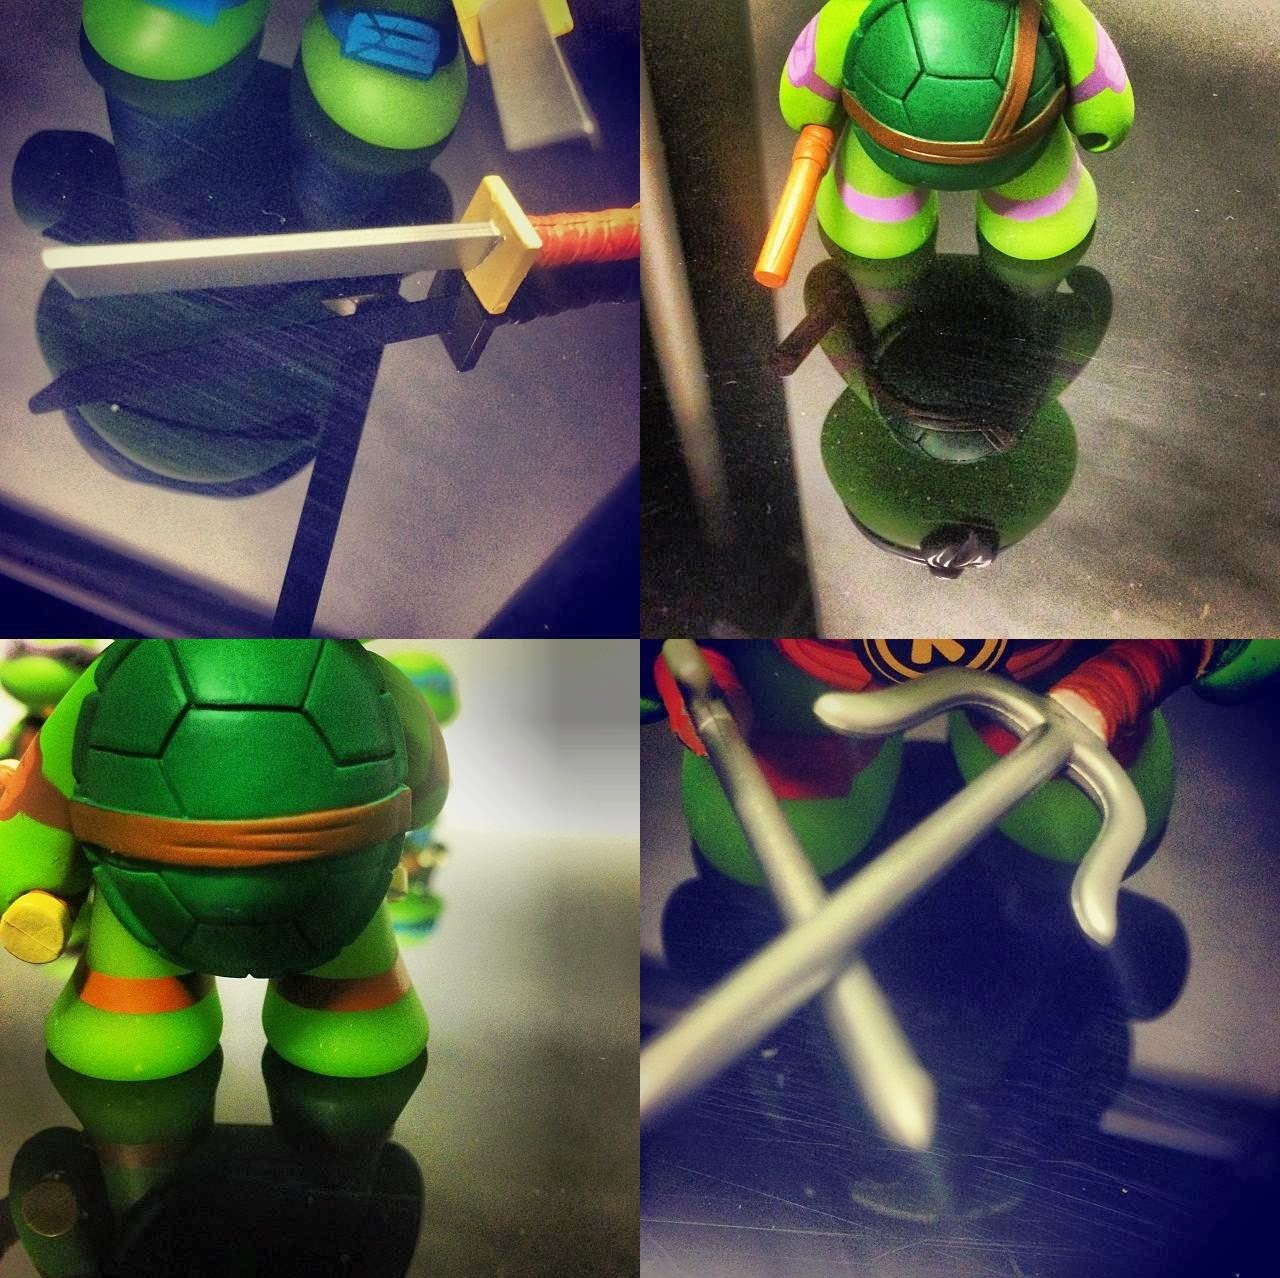 Teenage Mutant Ninja Turtles Vinyl Figures Teaser Images by Kidrobot - Leonardo, Donatello, Michelangelo and Raphael